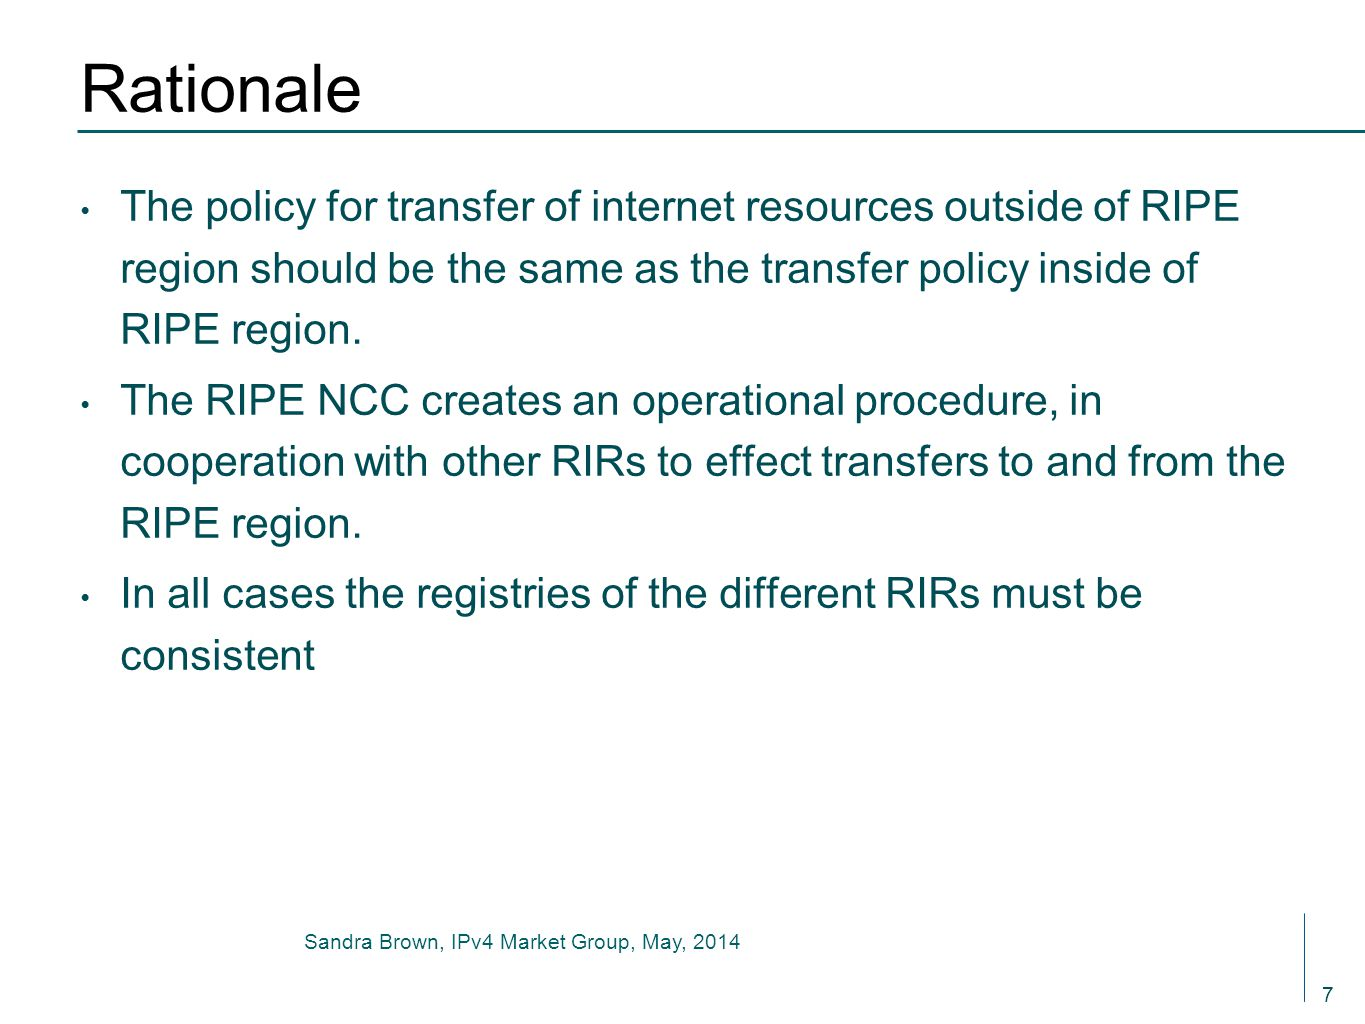 Sandra Brown, IPv4 Market Group, May, 2014 Rationale The policy for transfer of internet resources outside of RIPE region should be the same as the tr